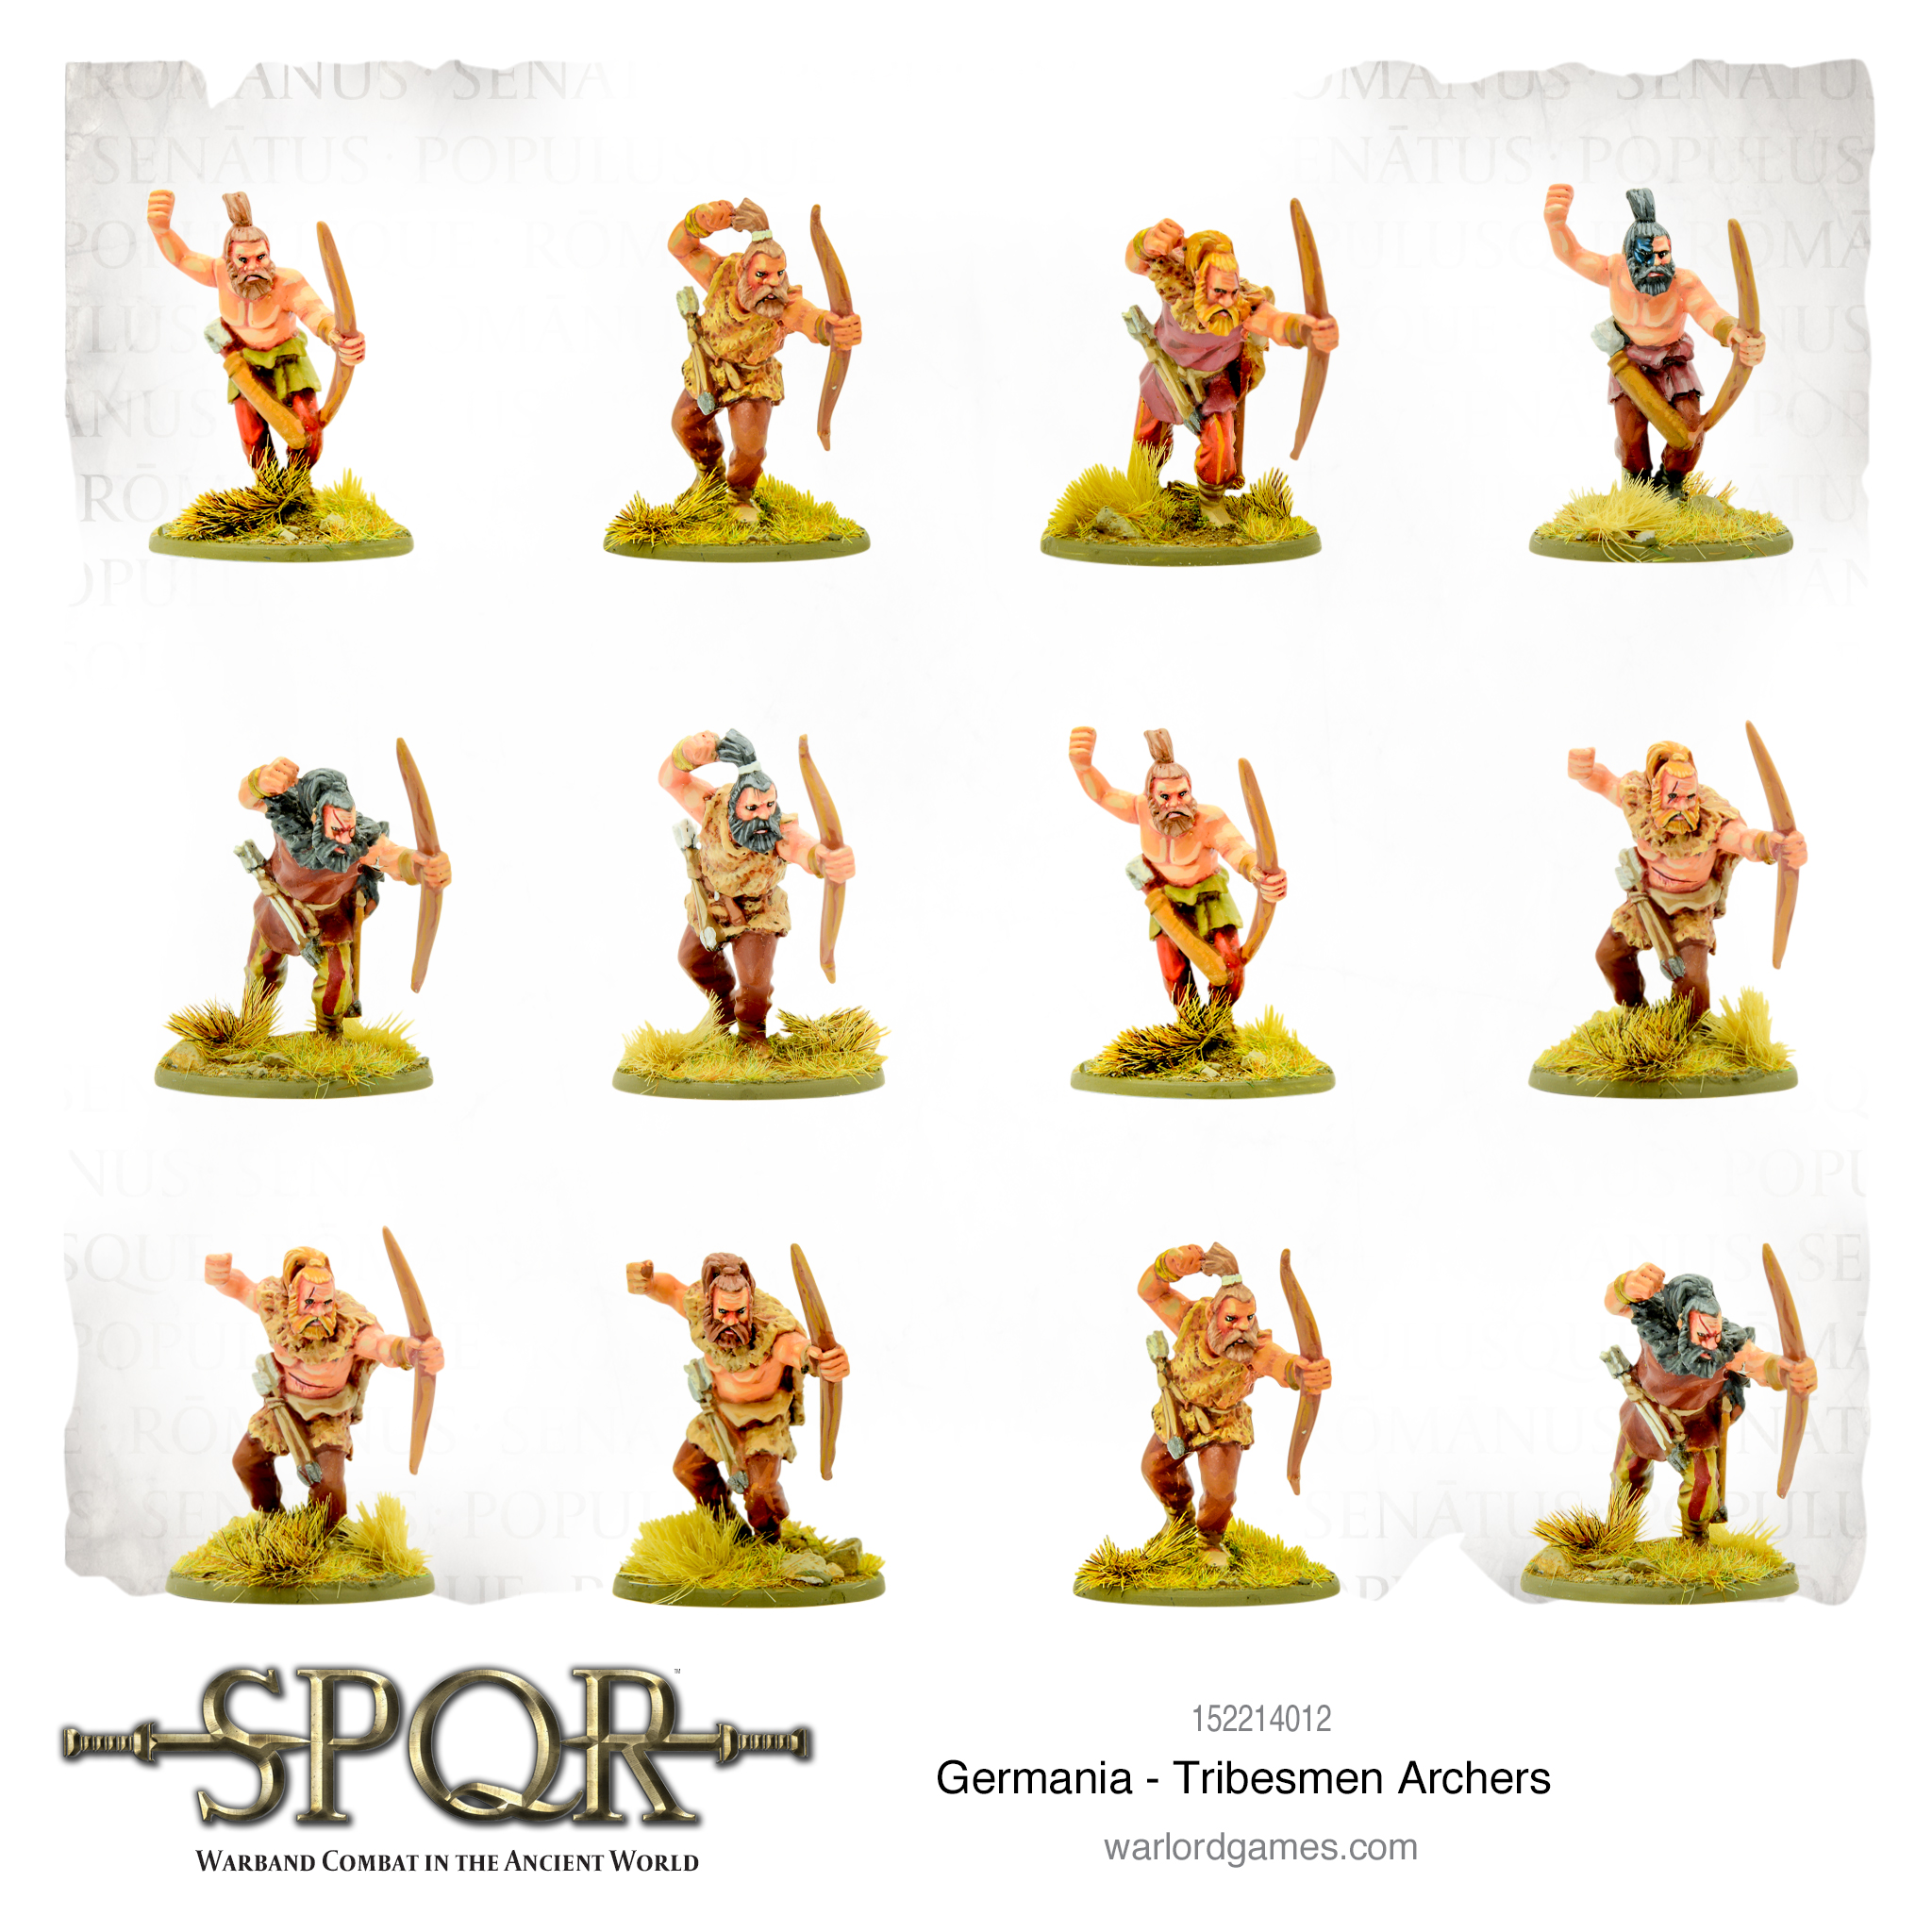 SPQR: Germania - Tribesmen Archers